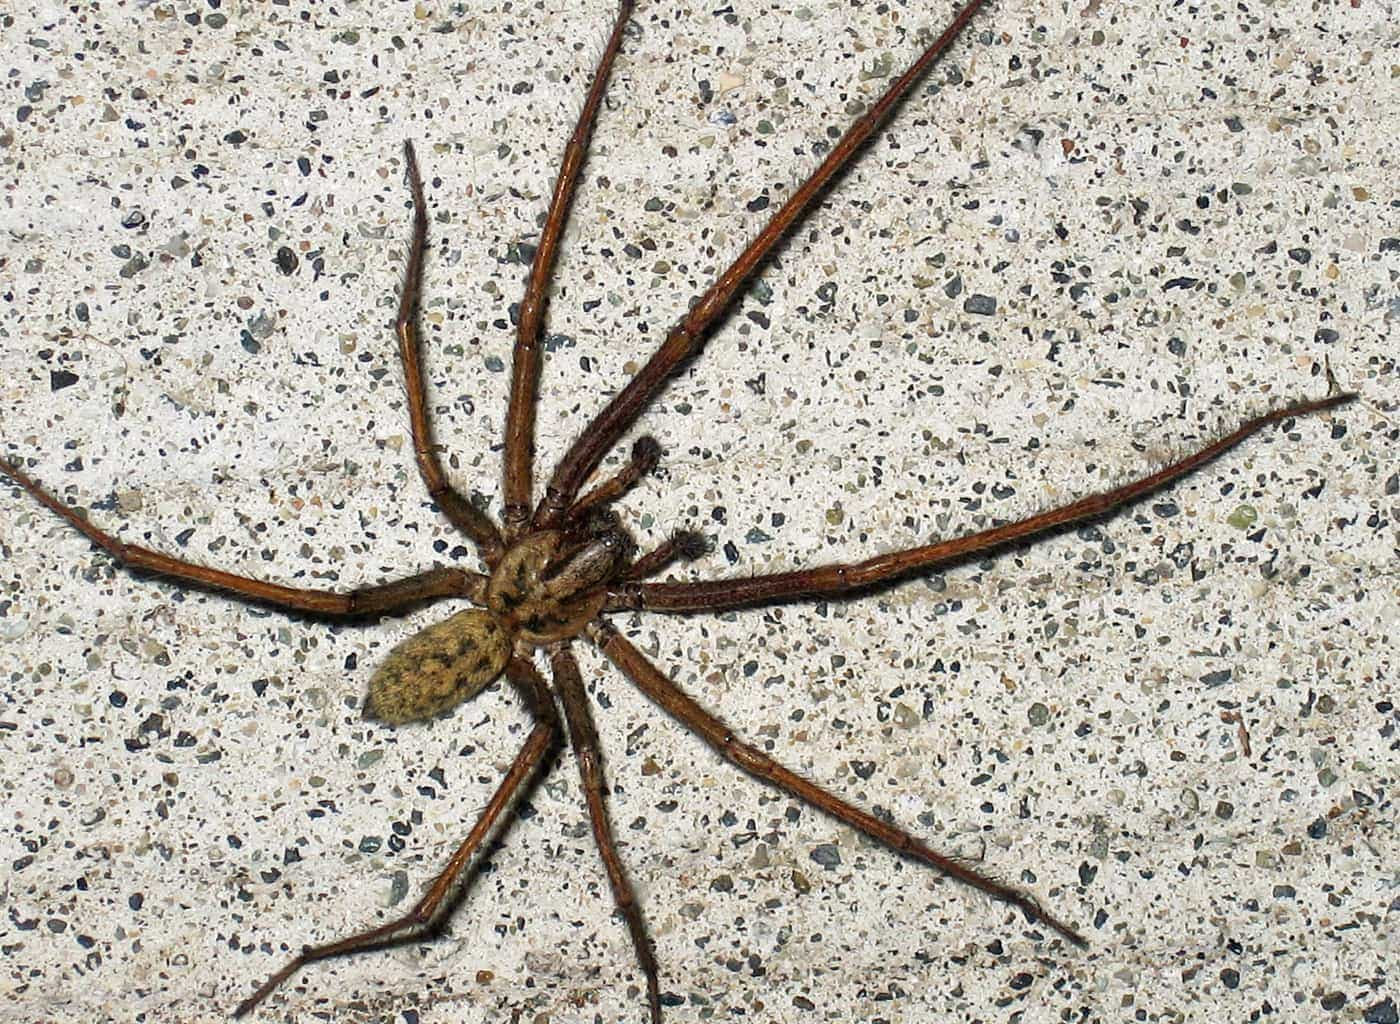 Picture of Eratigena atrica (Giant House Spider) - Male - Dorsal